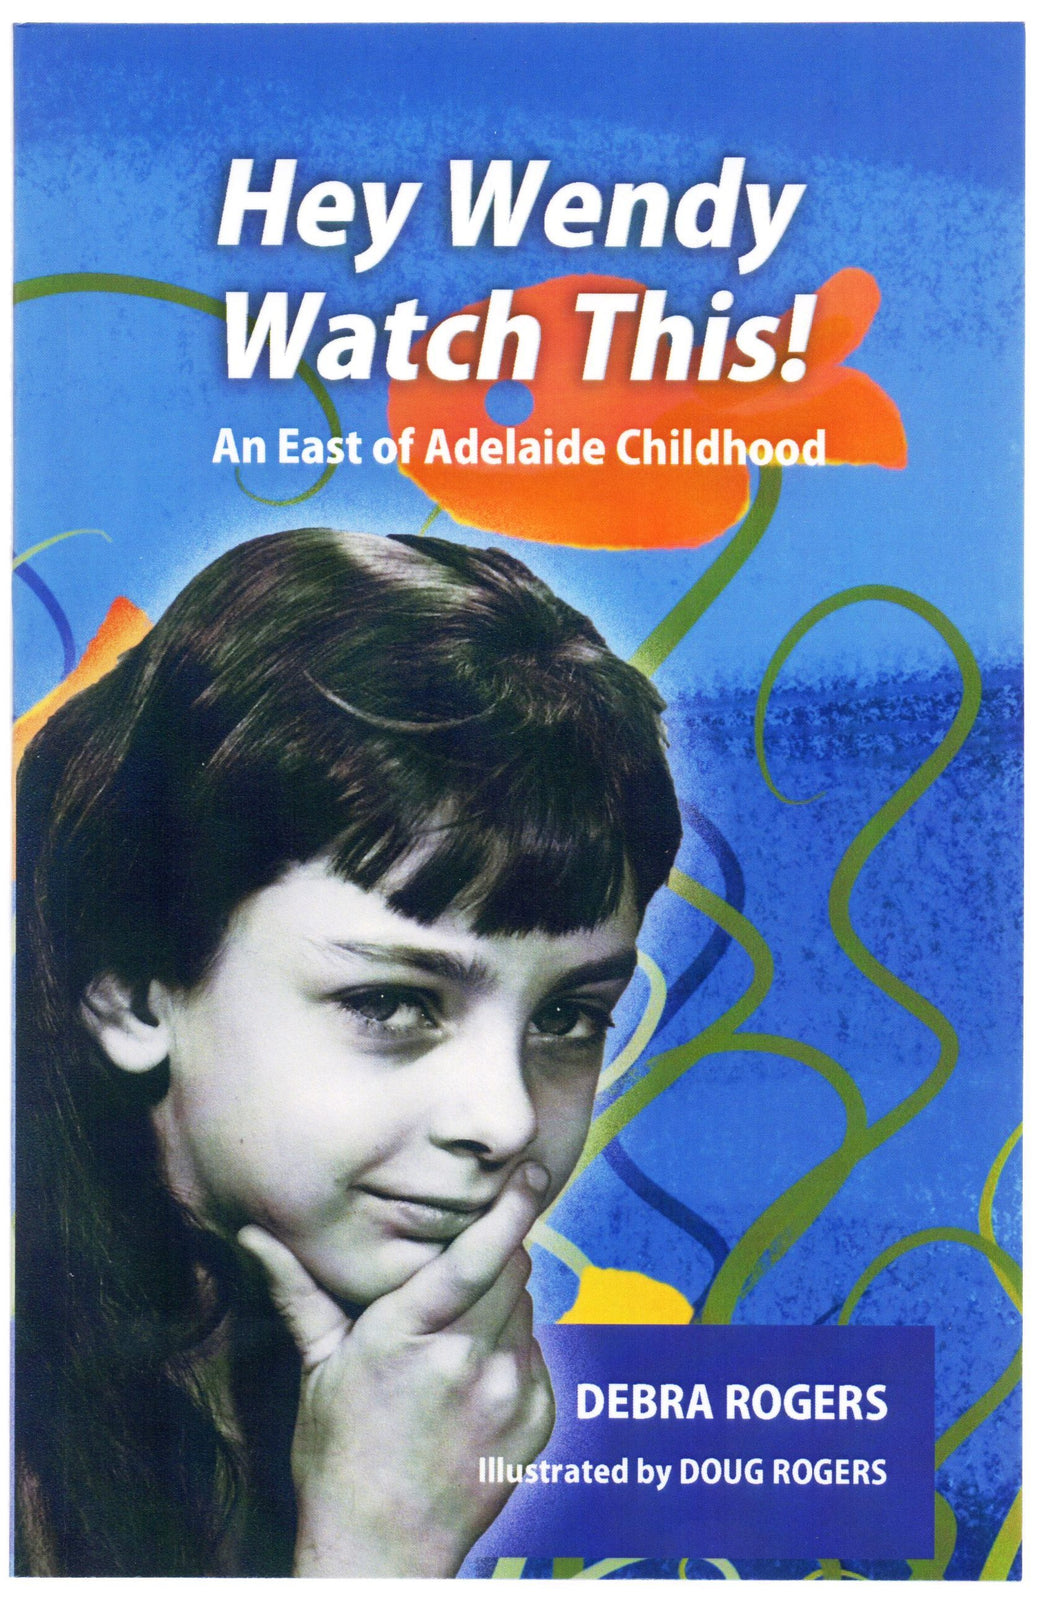 Hey Wendy Watch This! An East of Adelaide Childhood